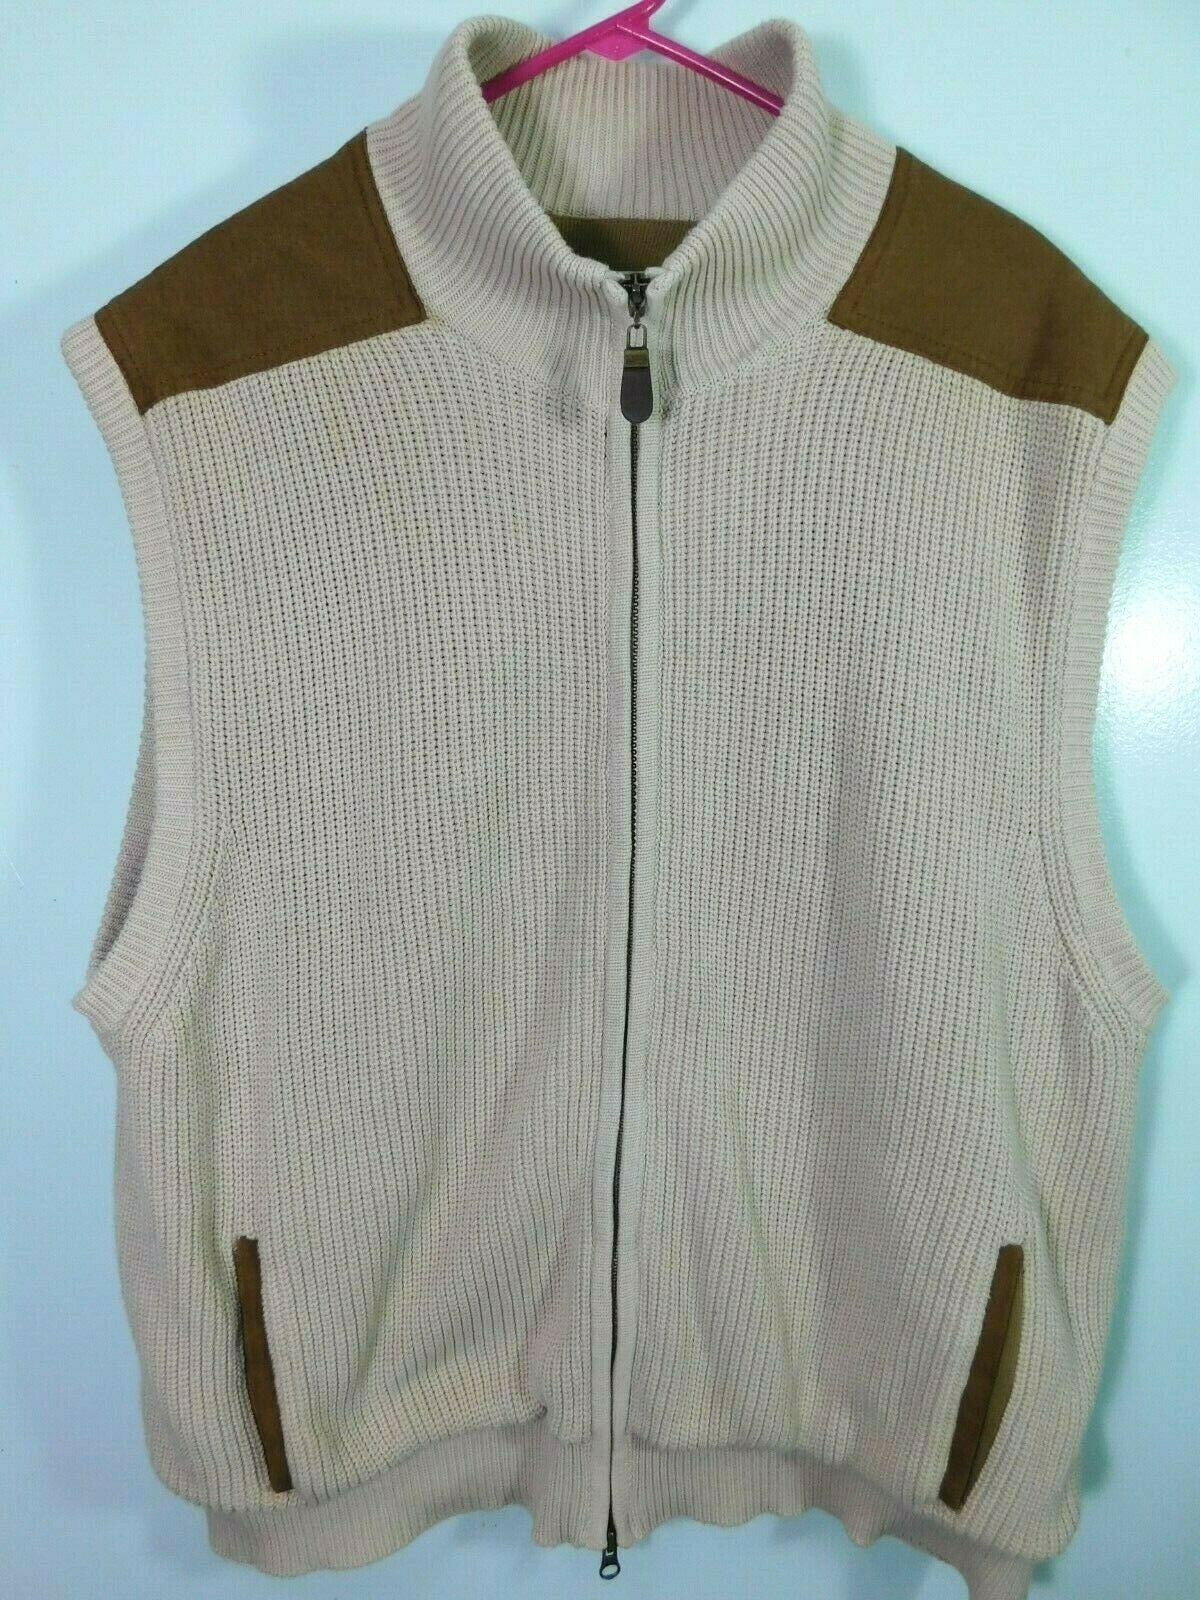 Orvis Cable Knit Full Zip Sweater Vest Men's XL Cream colord Suede Shoulder